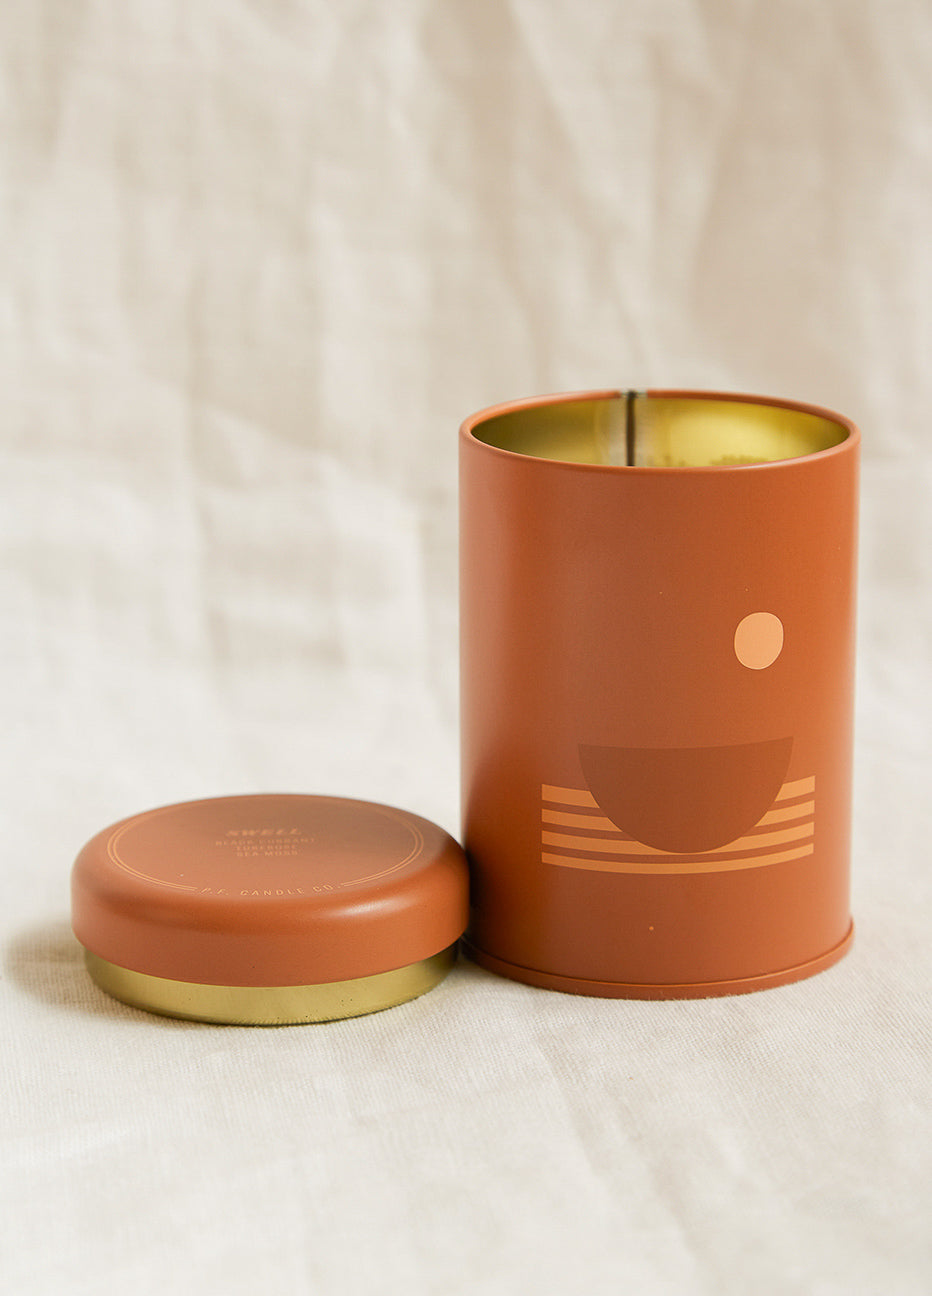 PF Co Swell Candle